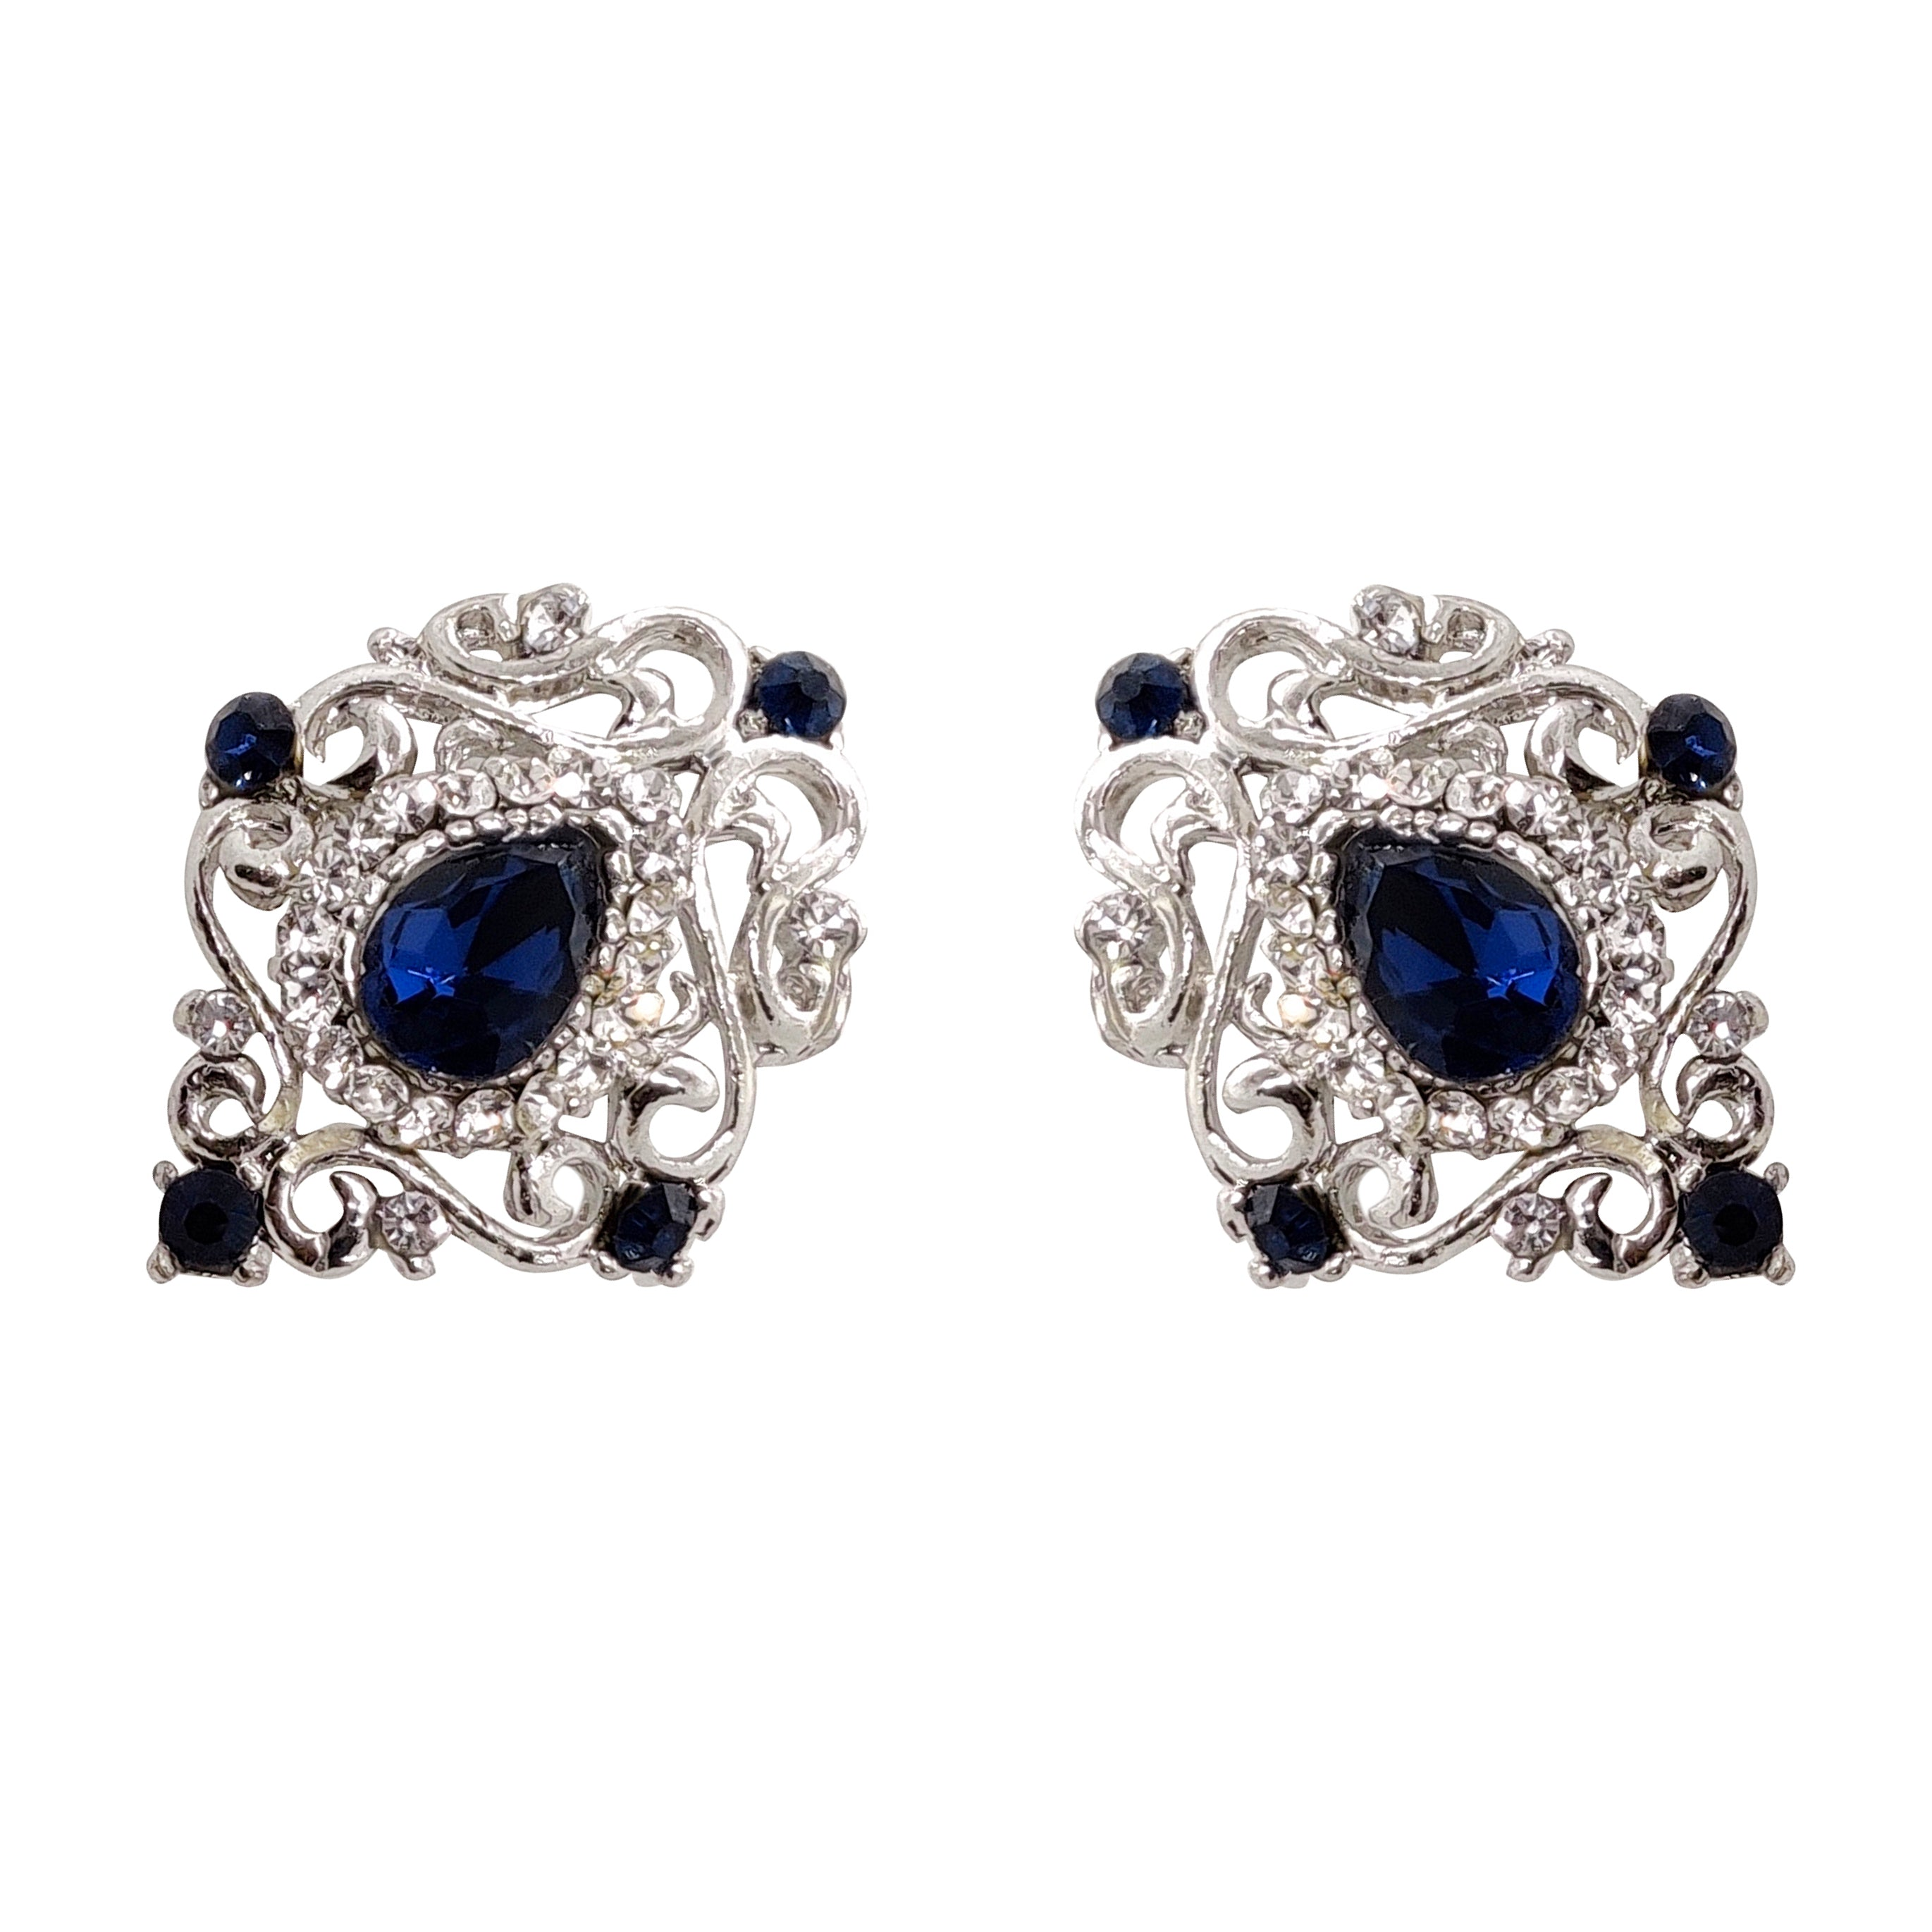 Dazzling Collar Pins with Rhinestones (Blue)